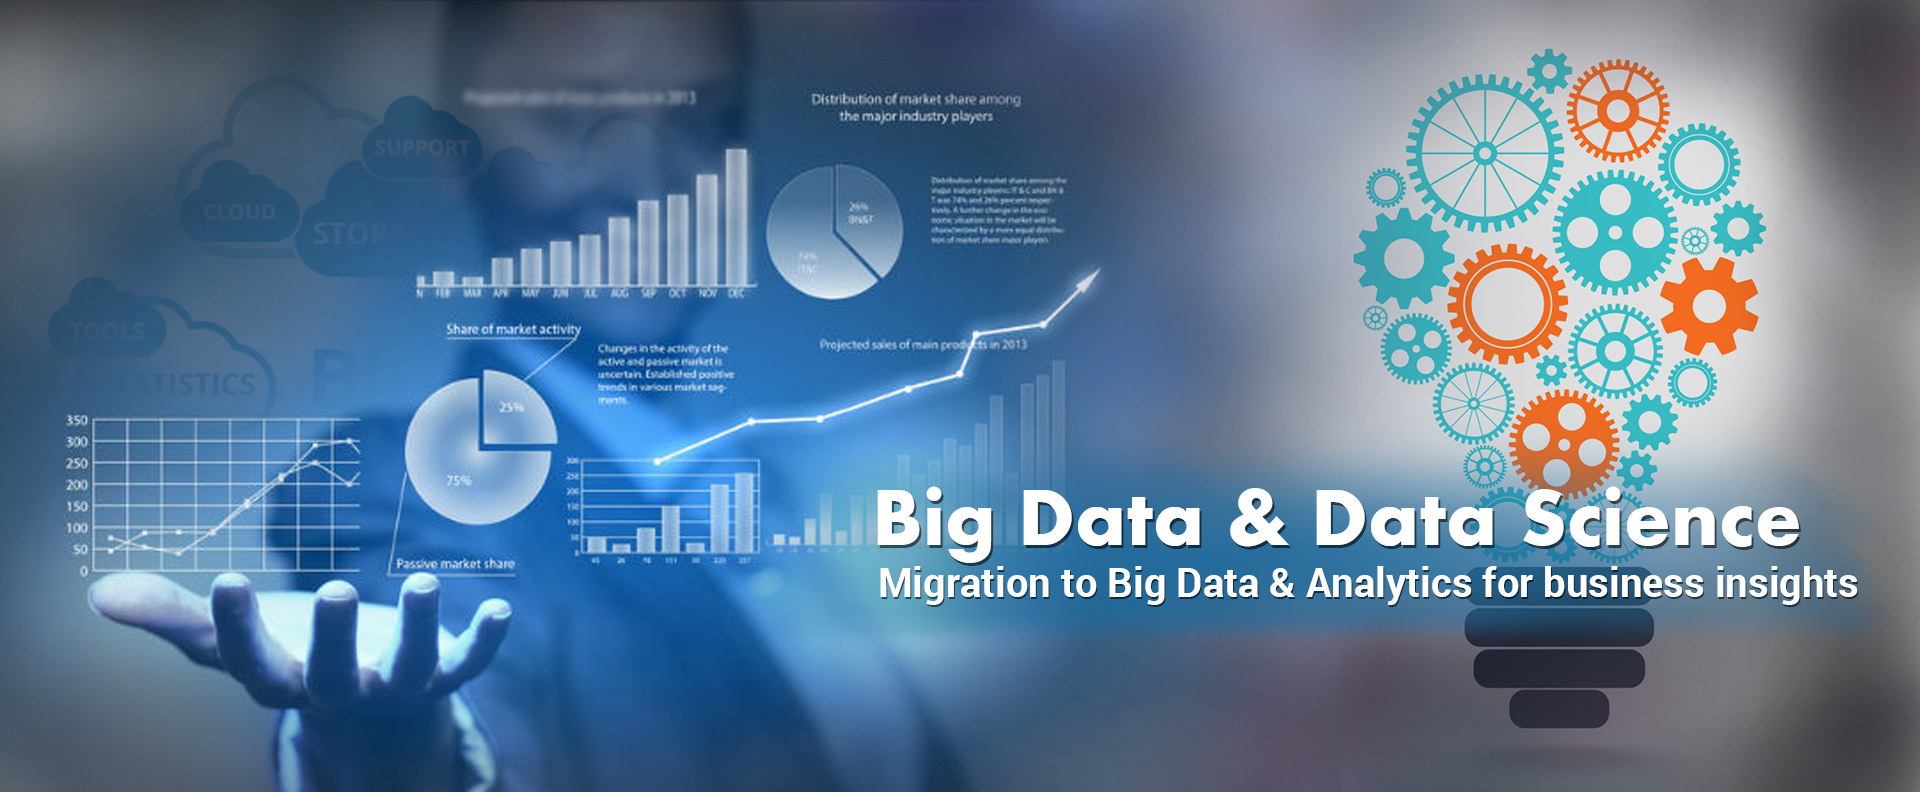 http://infonextech.com/services/infonex/big-data-migration